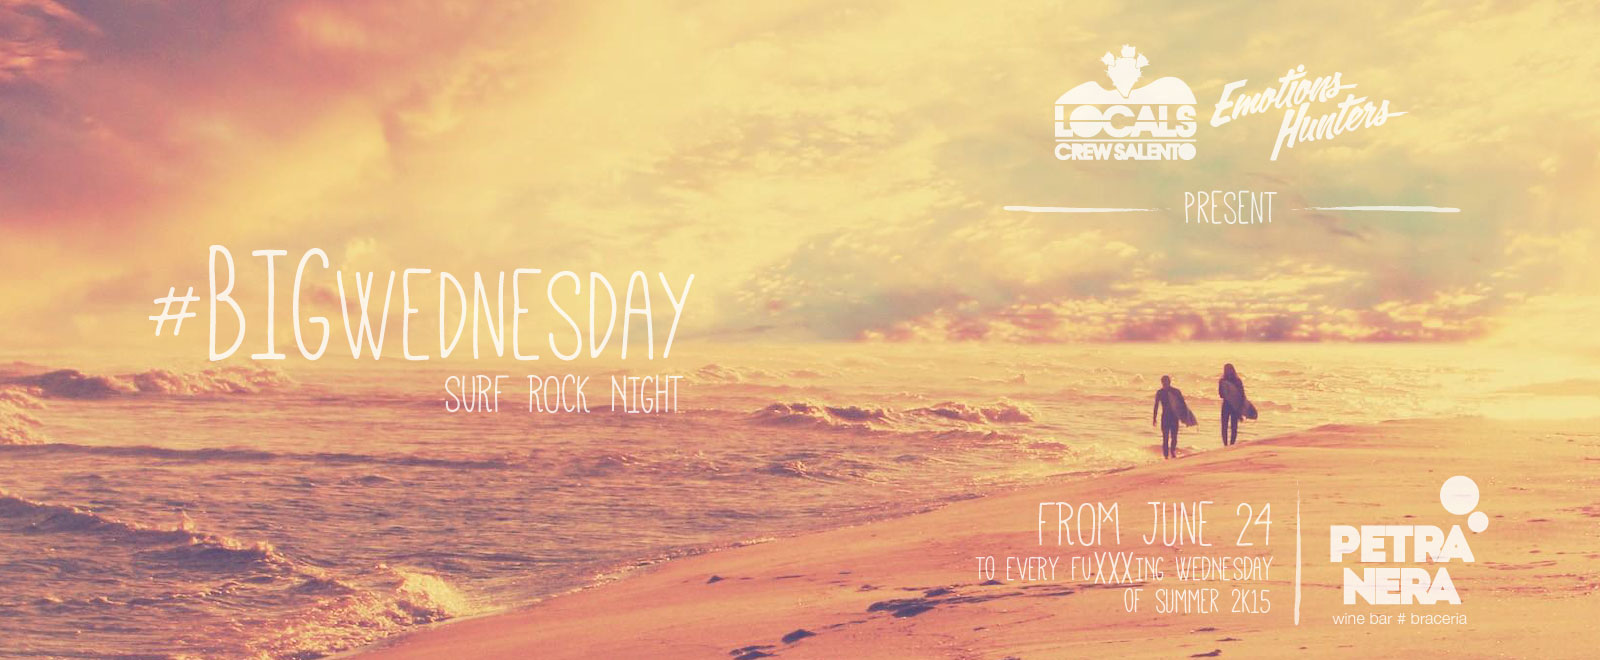 Locals-Crew-BIG-Wednesday-@Petranera-Visual-Francesco-Orlandini-3